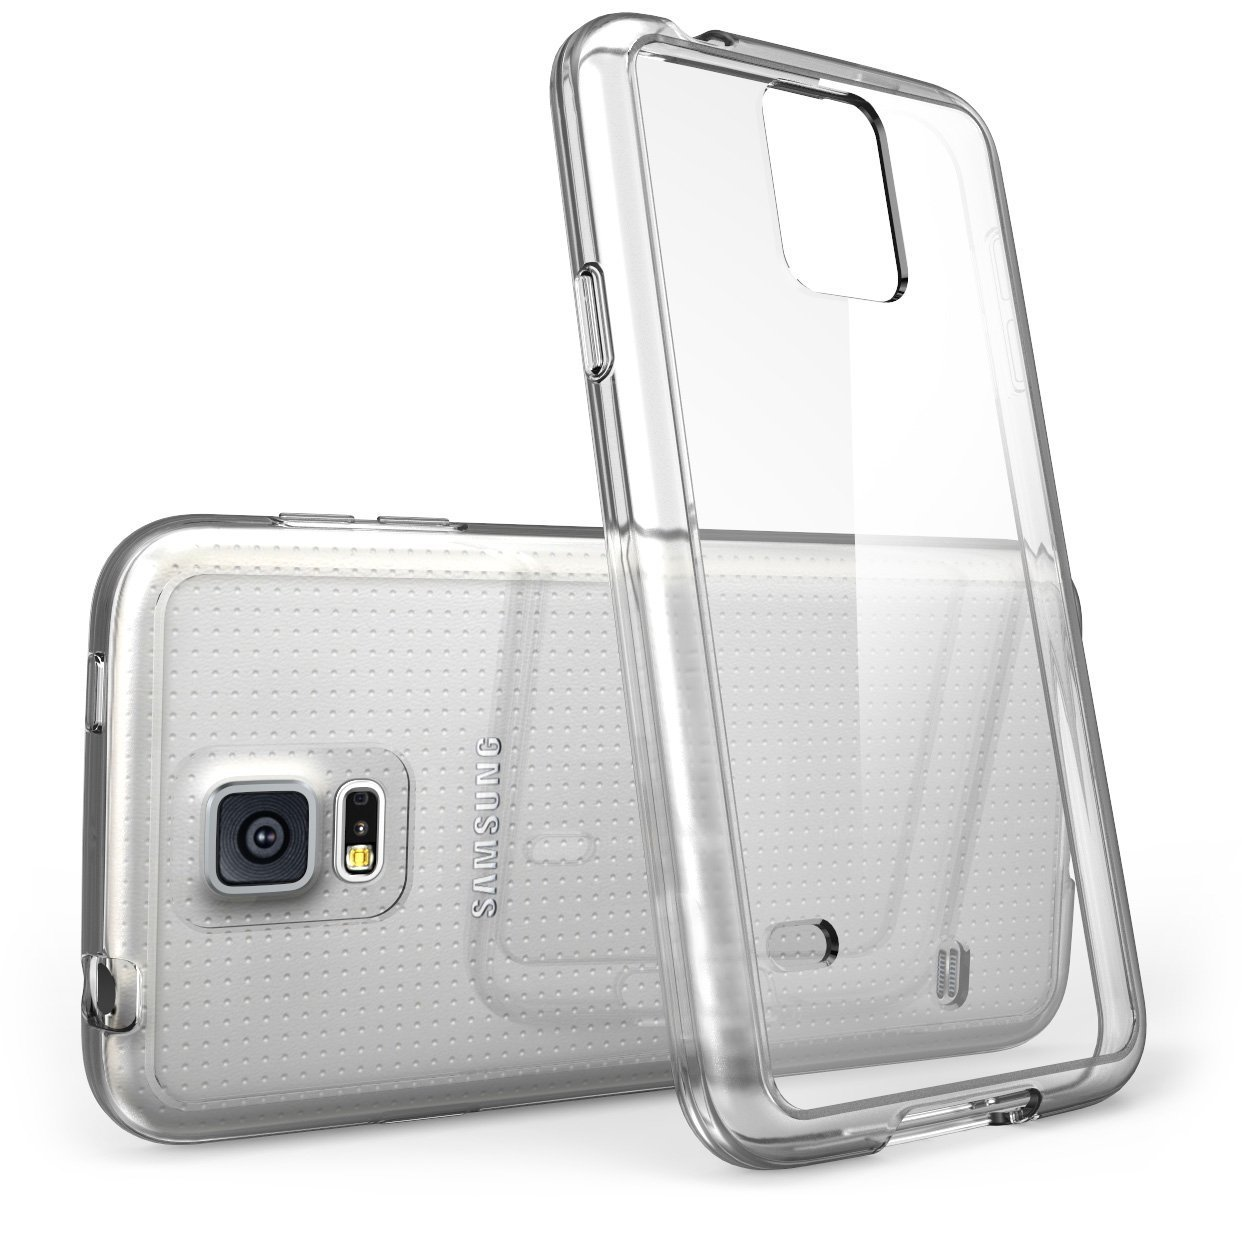 quality design 1999c 716d3 AceAbove Samsung Galaxy Note 3 Slim Clear Back Case with Bumper / Cover for  Galaxy Note 3 - Clear